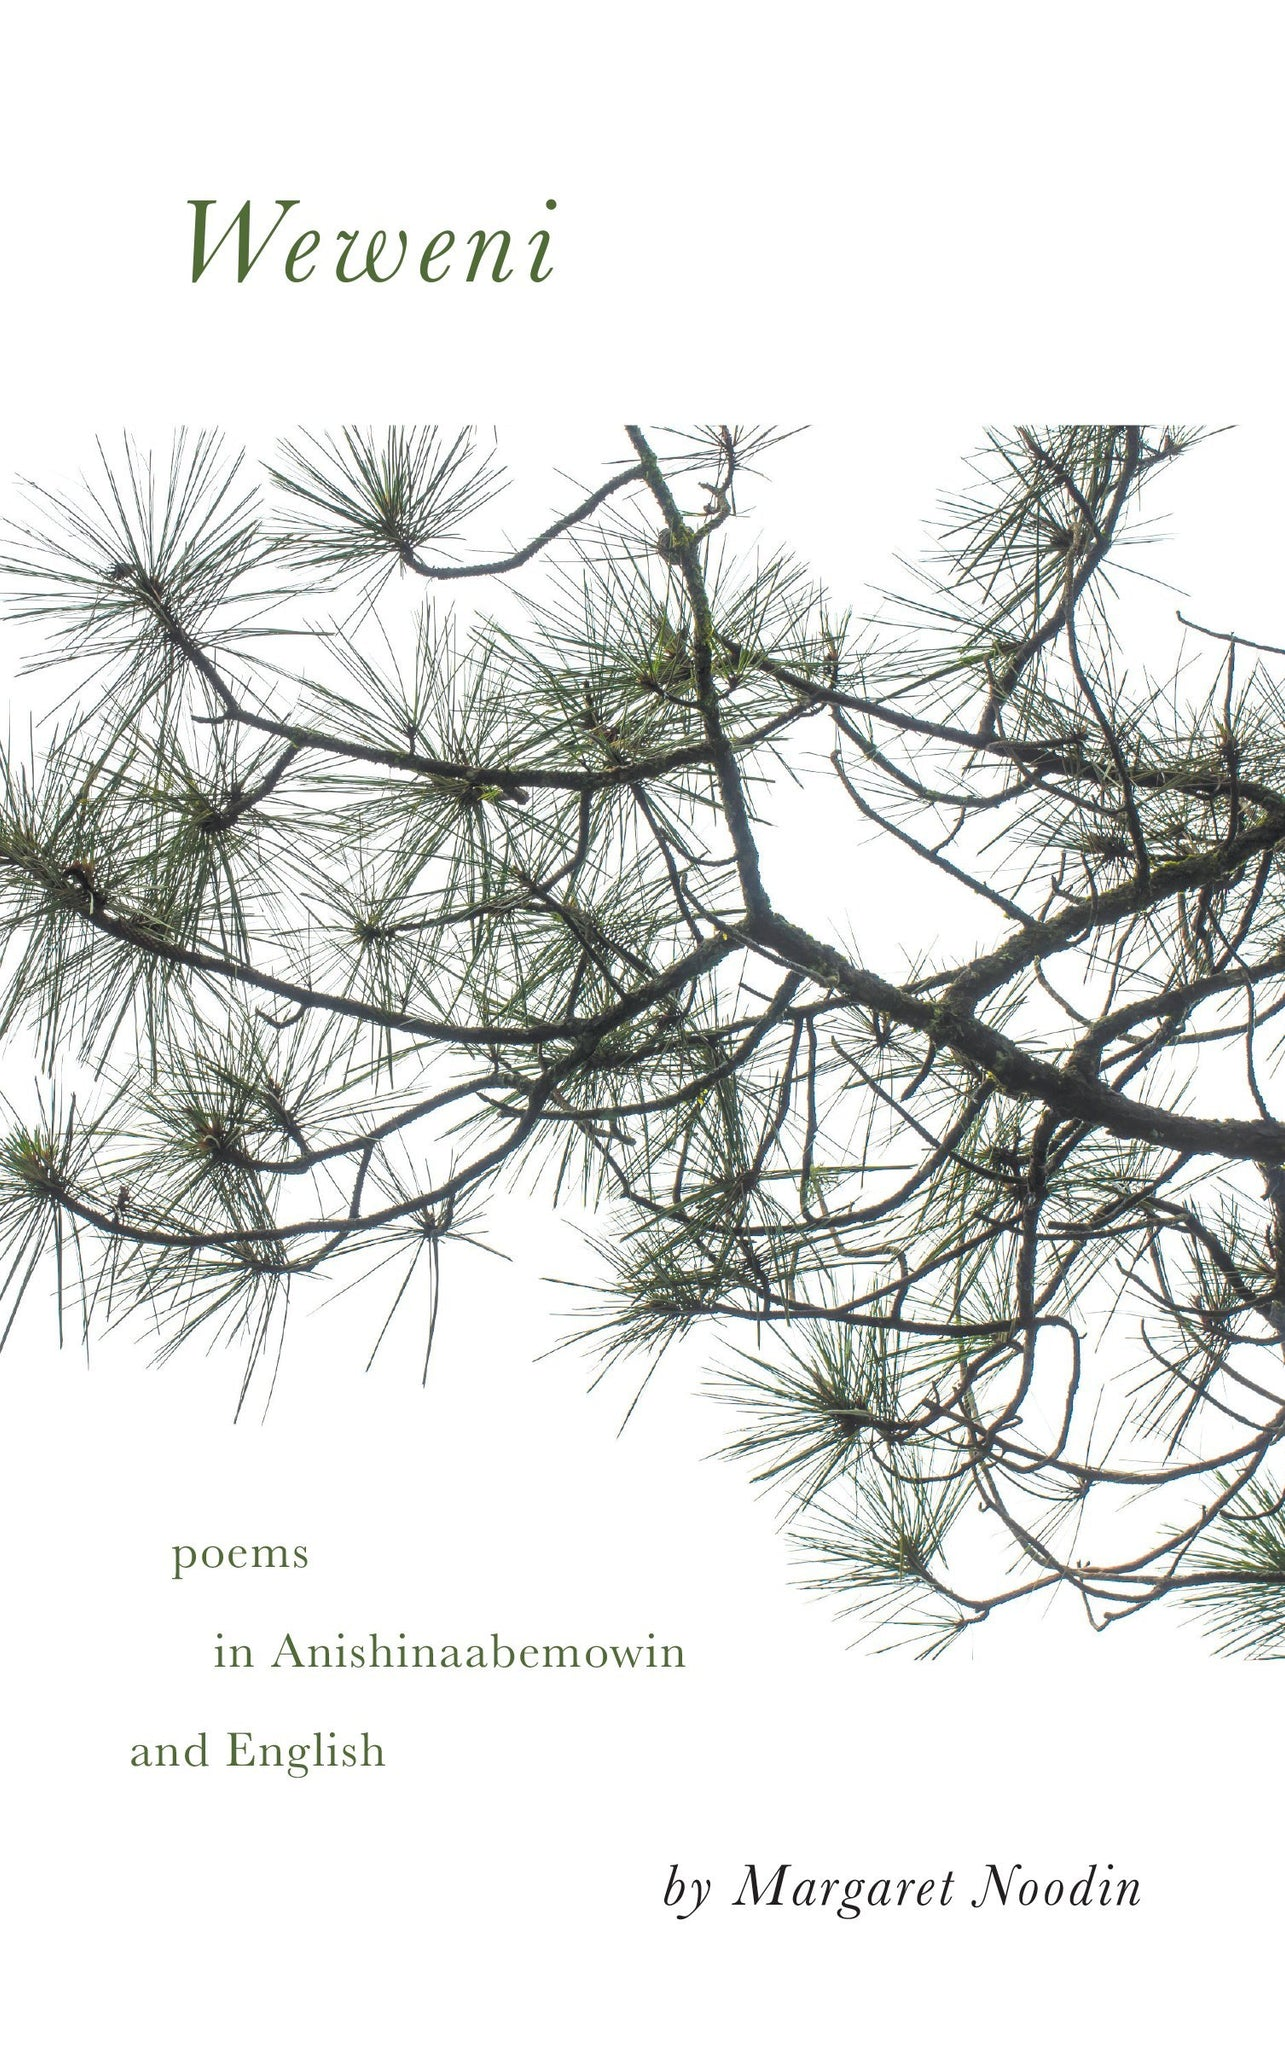 Weweni: Poems in Anishinaabemowin and English